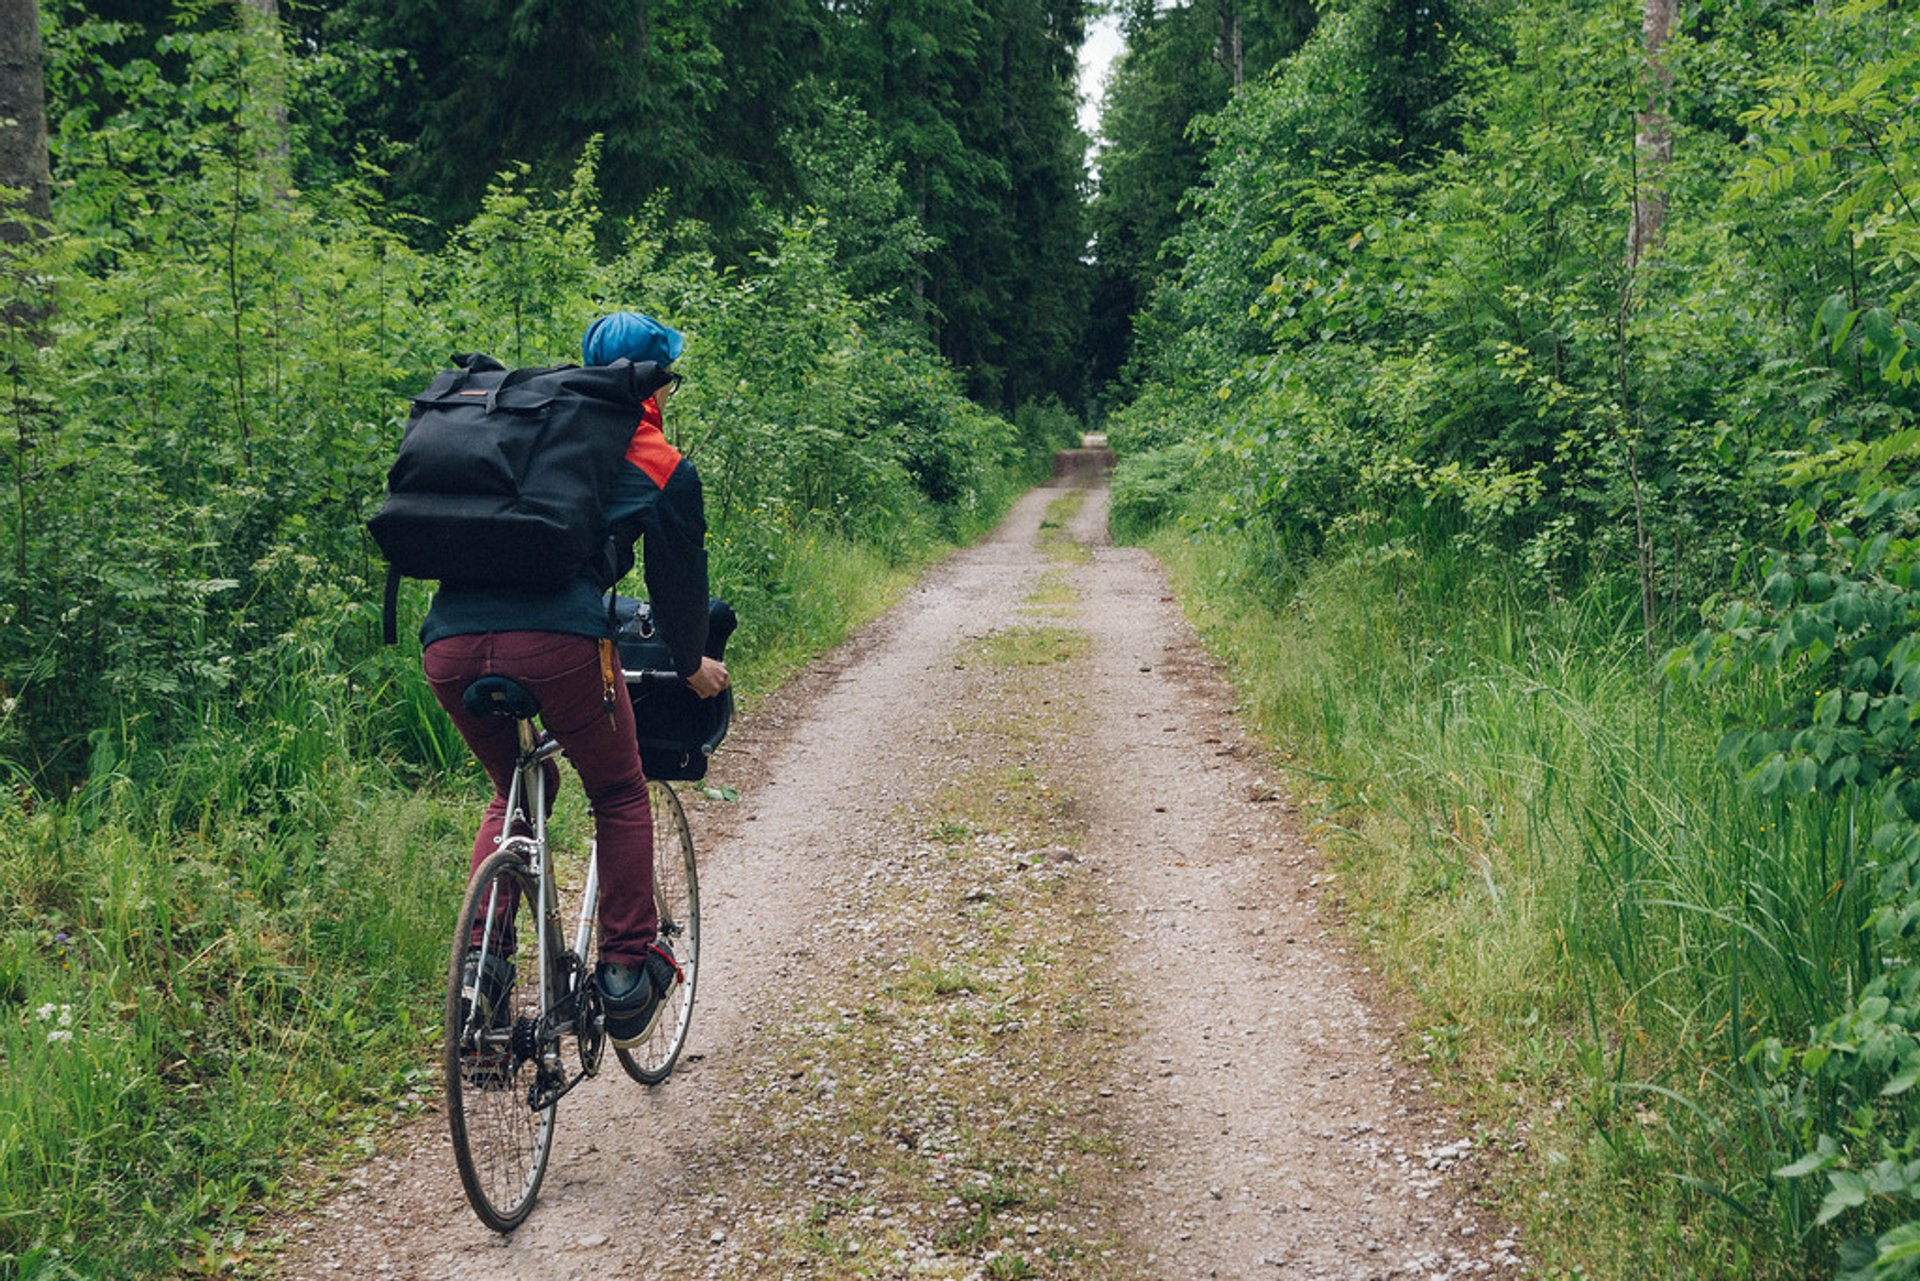 Little bicycle trip near Narva, Estonia 2020